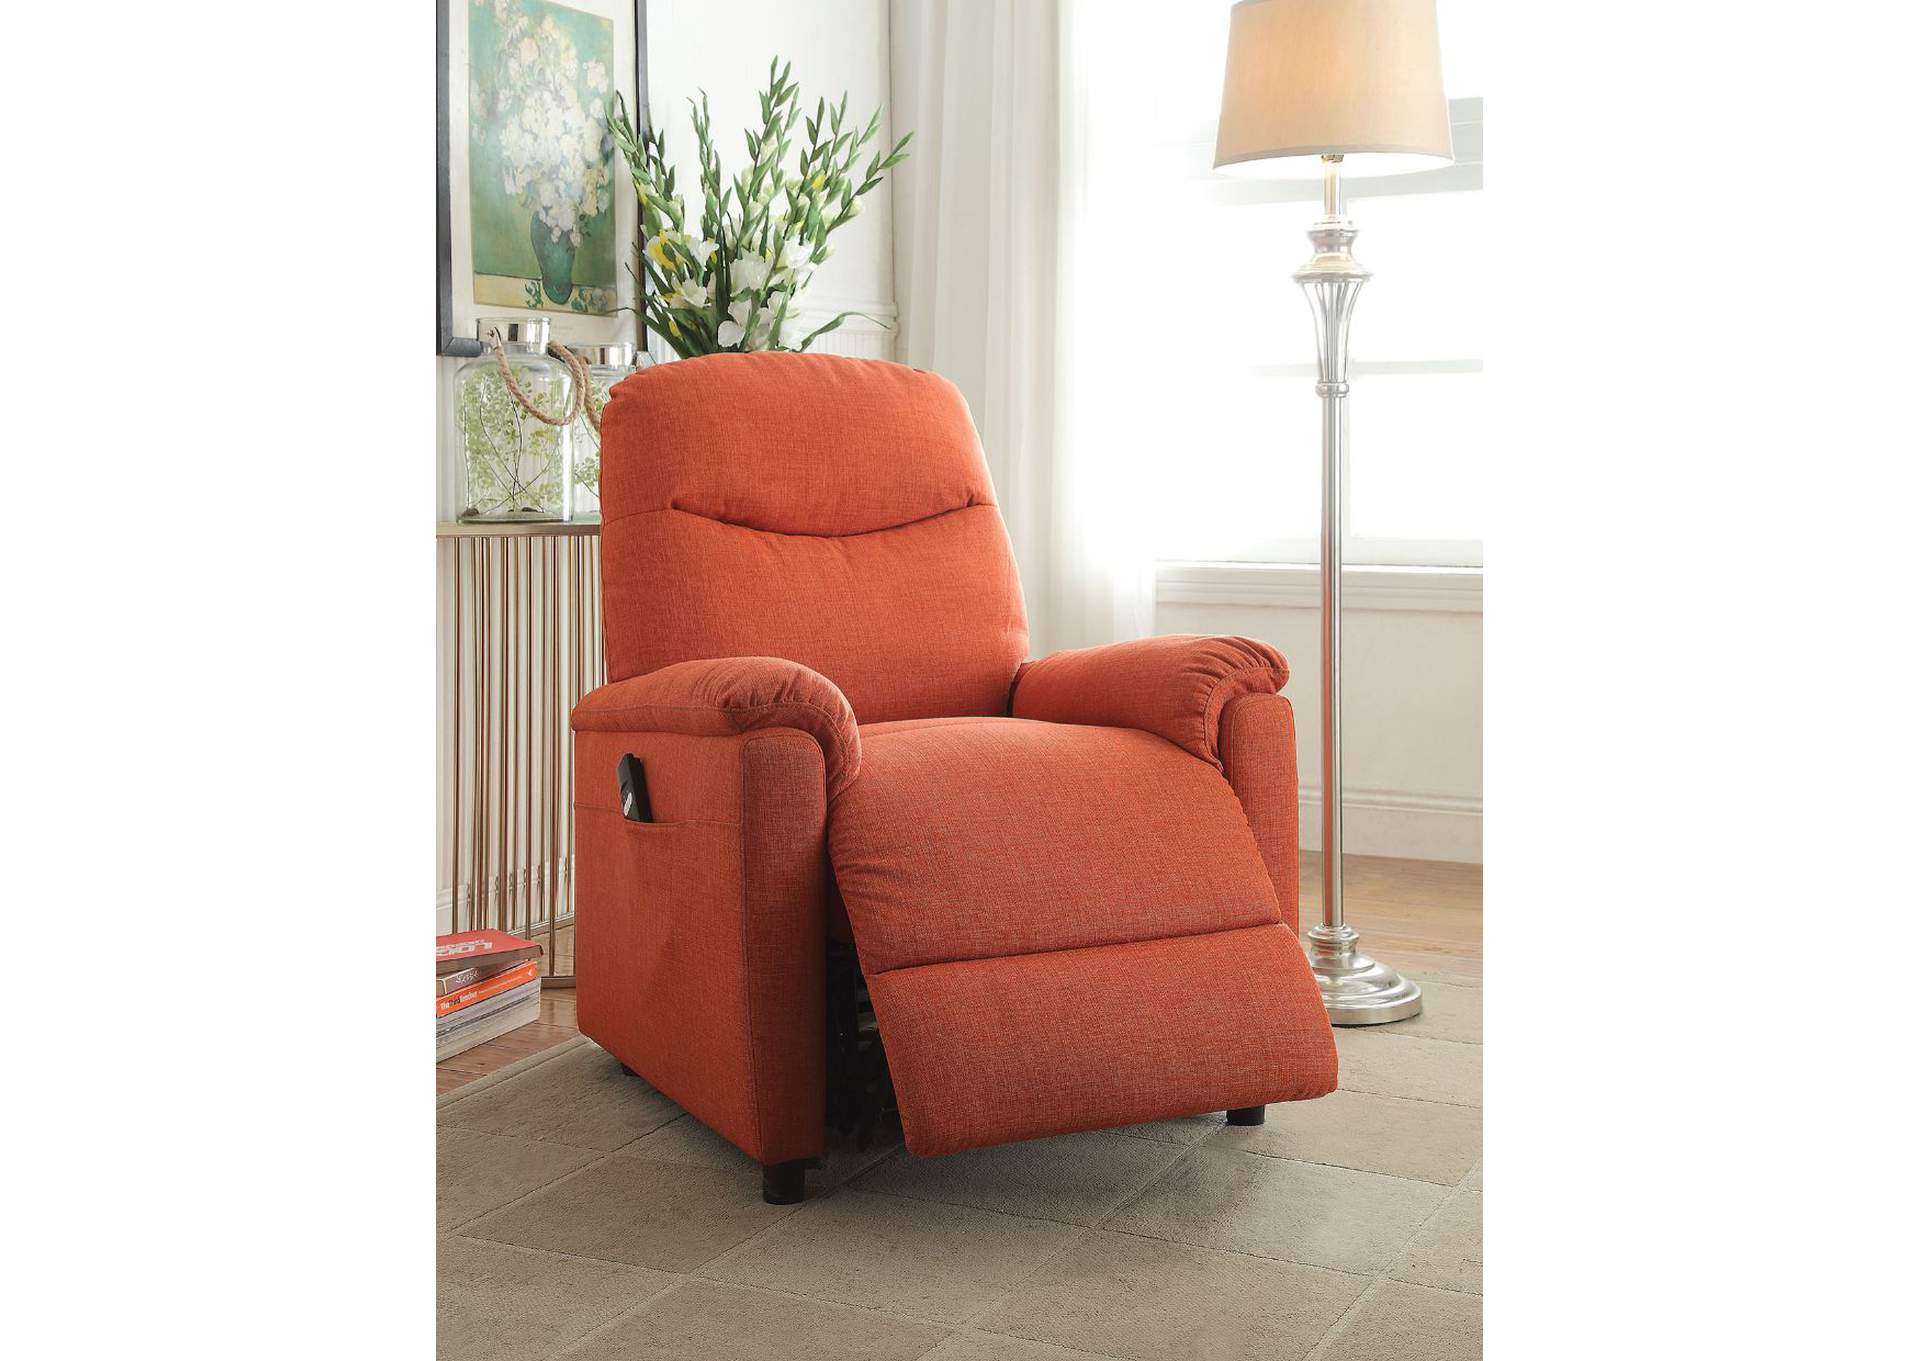 Enjoyable 5Th Avenue Furniture Mi Catina Orange Power Lift Recliner Onthecornerstone Fun Painted Chair Ideas Images Onthecornerstoneorg